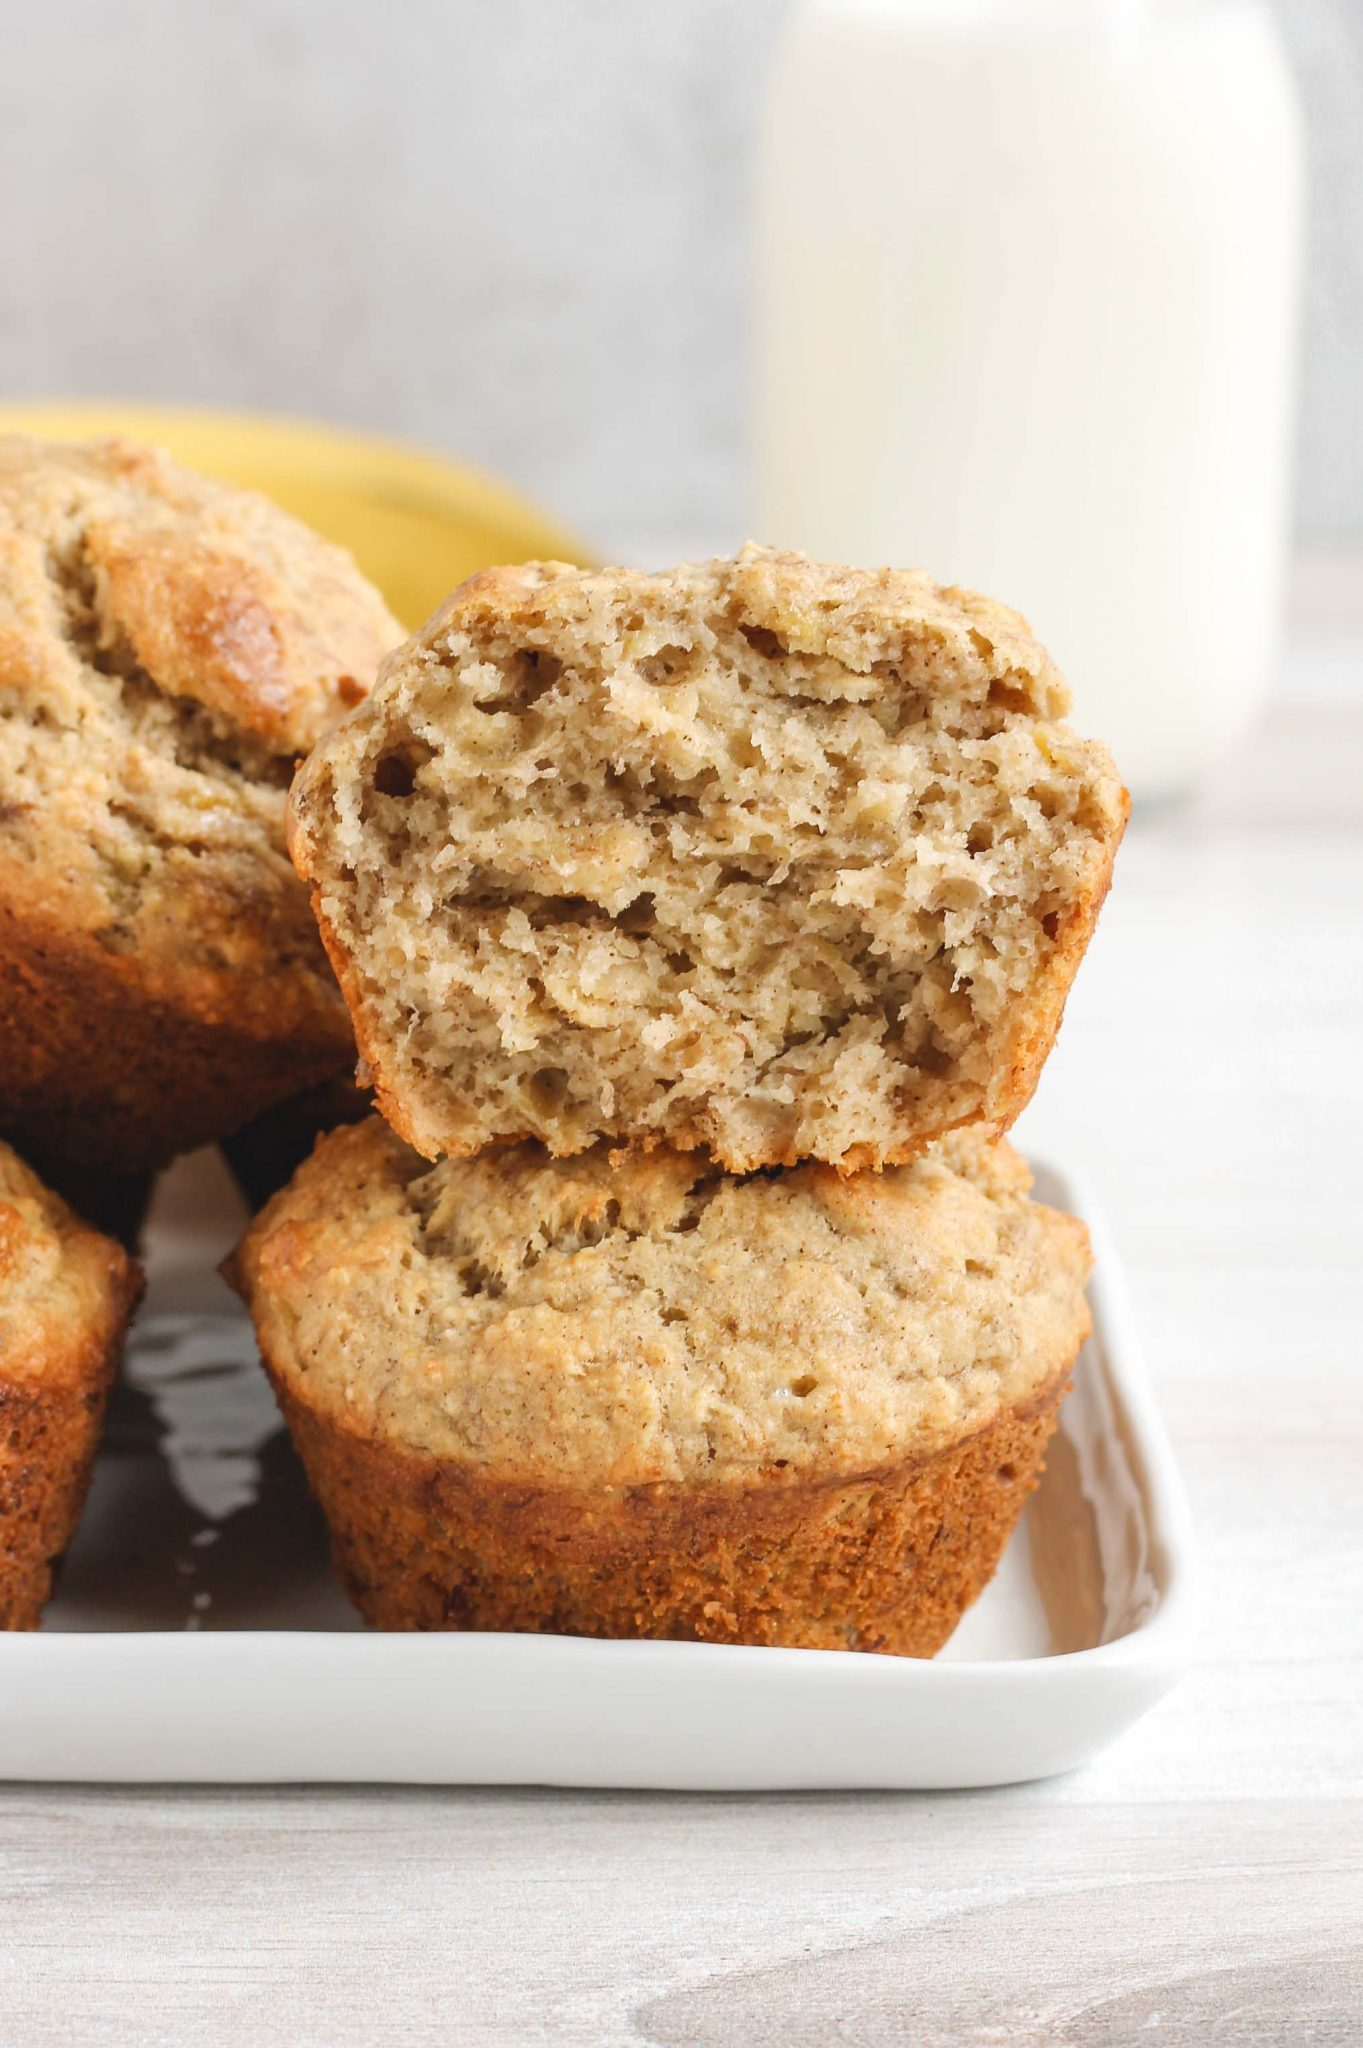 banana muffins stacked two high with top one split open to see the inside of the muffin